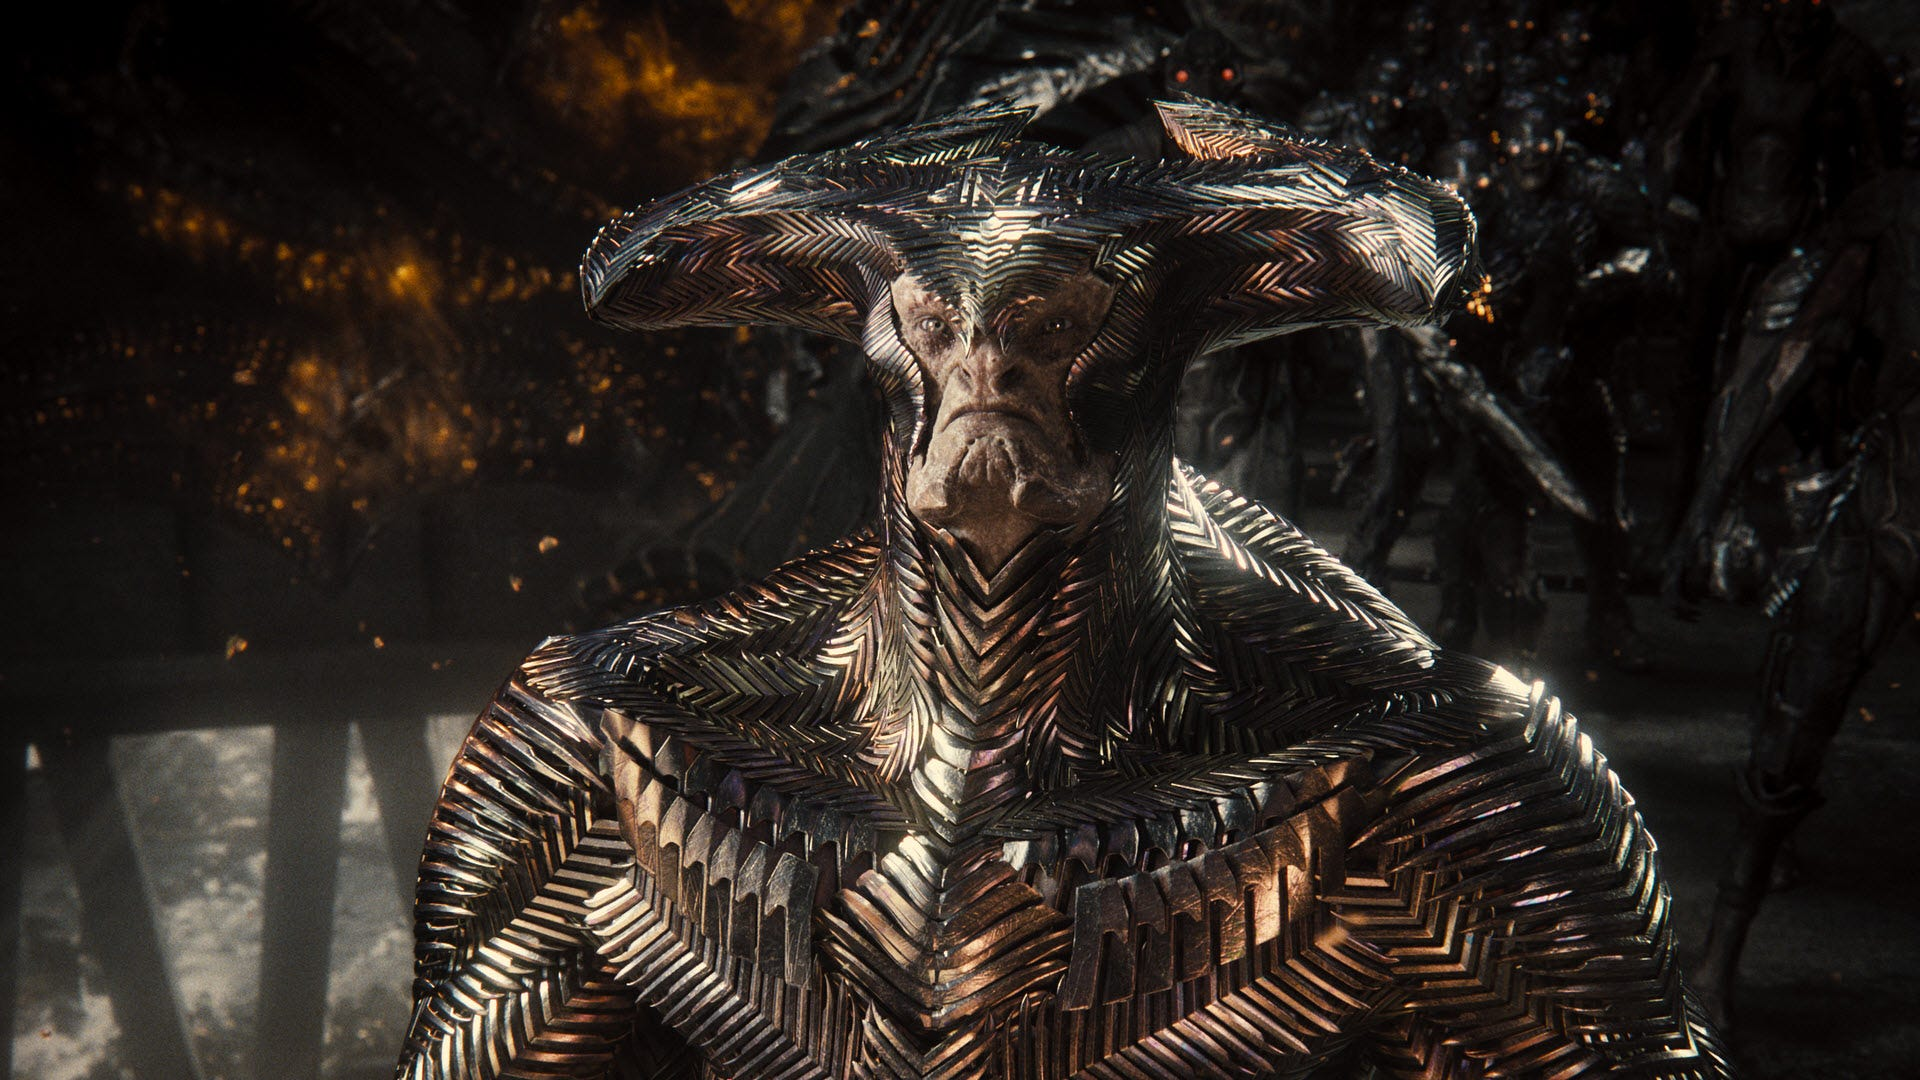 Steppenwolf covered in metal armor.